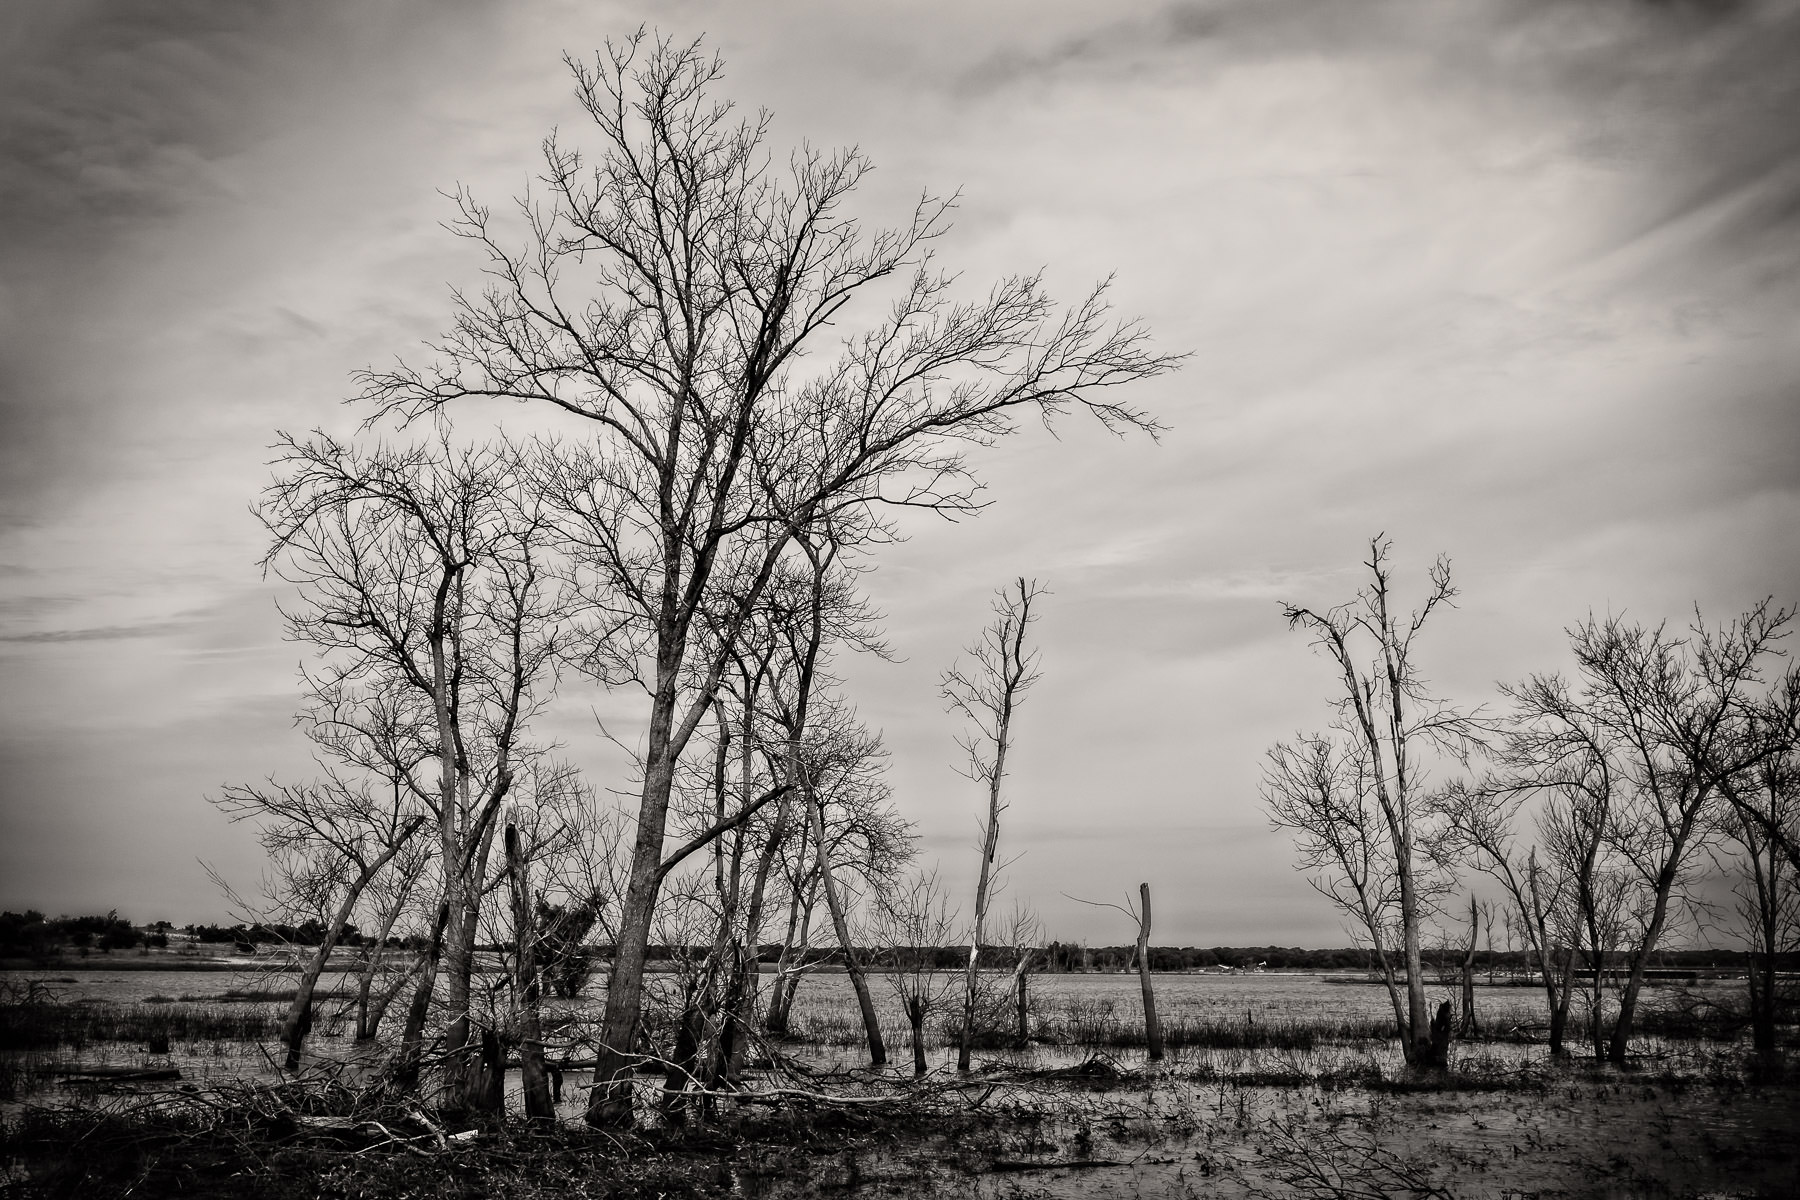 Trees grow in the shallow marshes of North Texas' Hagerman National Wildlife Refuge.